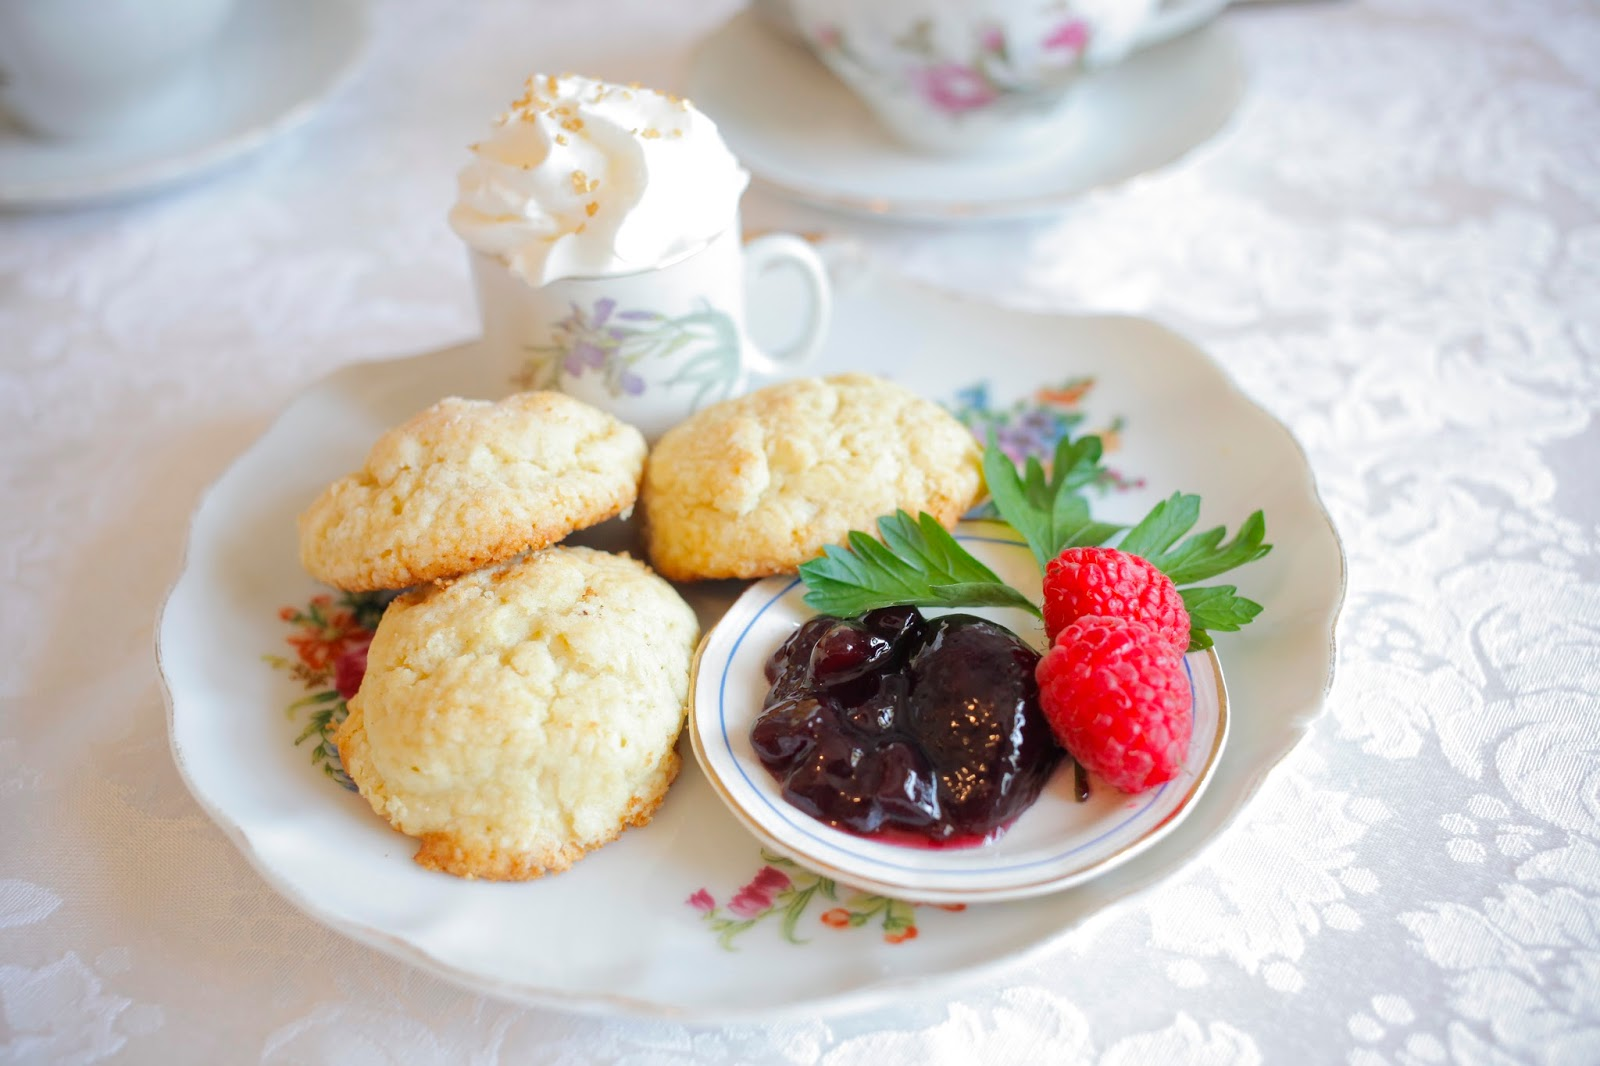 Scones from Ashes Boutique and Tea Garden